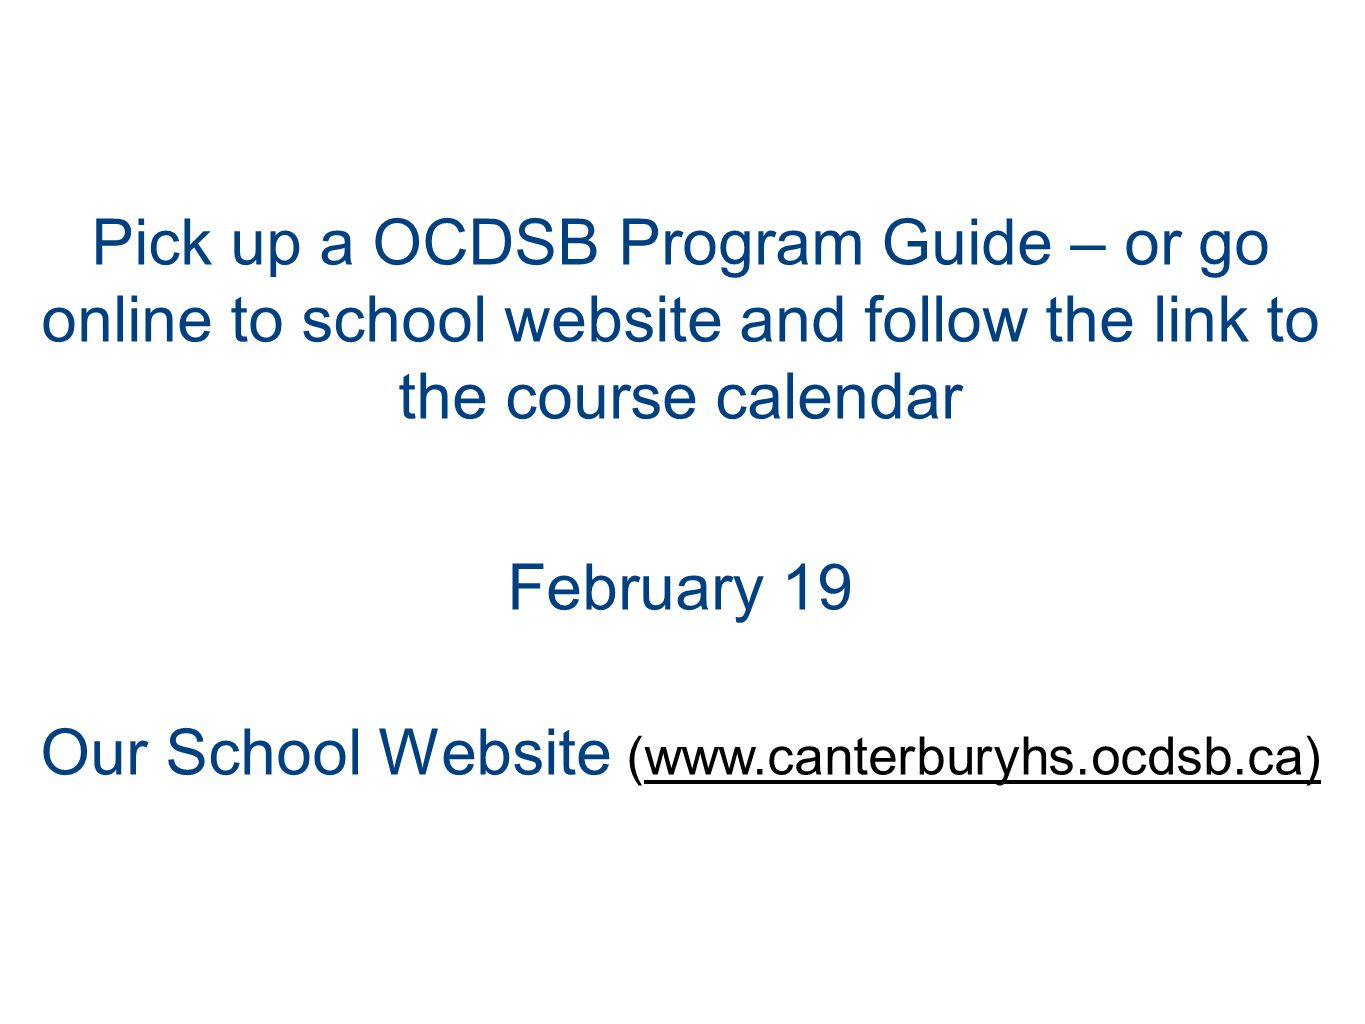 Pick up a OCDSB Program Guide – or go online to school website and follow the link to the course calendar February 19 Our School Website (www.canterburyhs.ocdsb.ca)